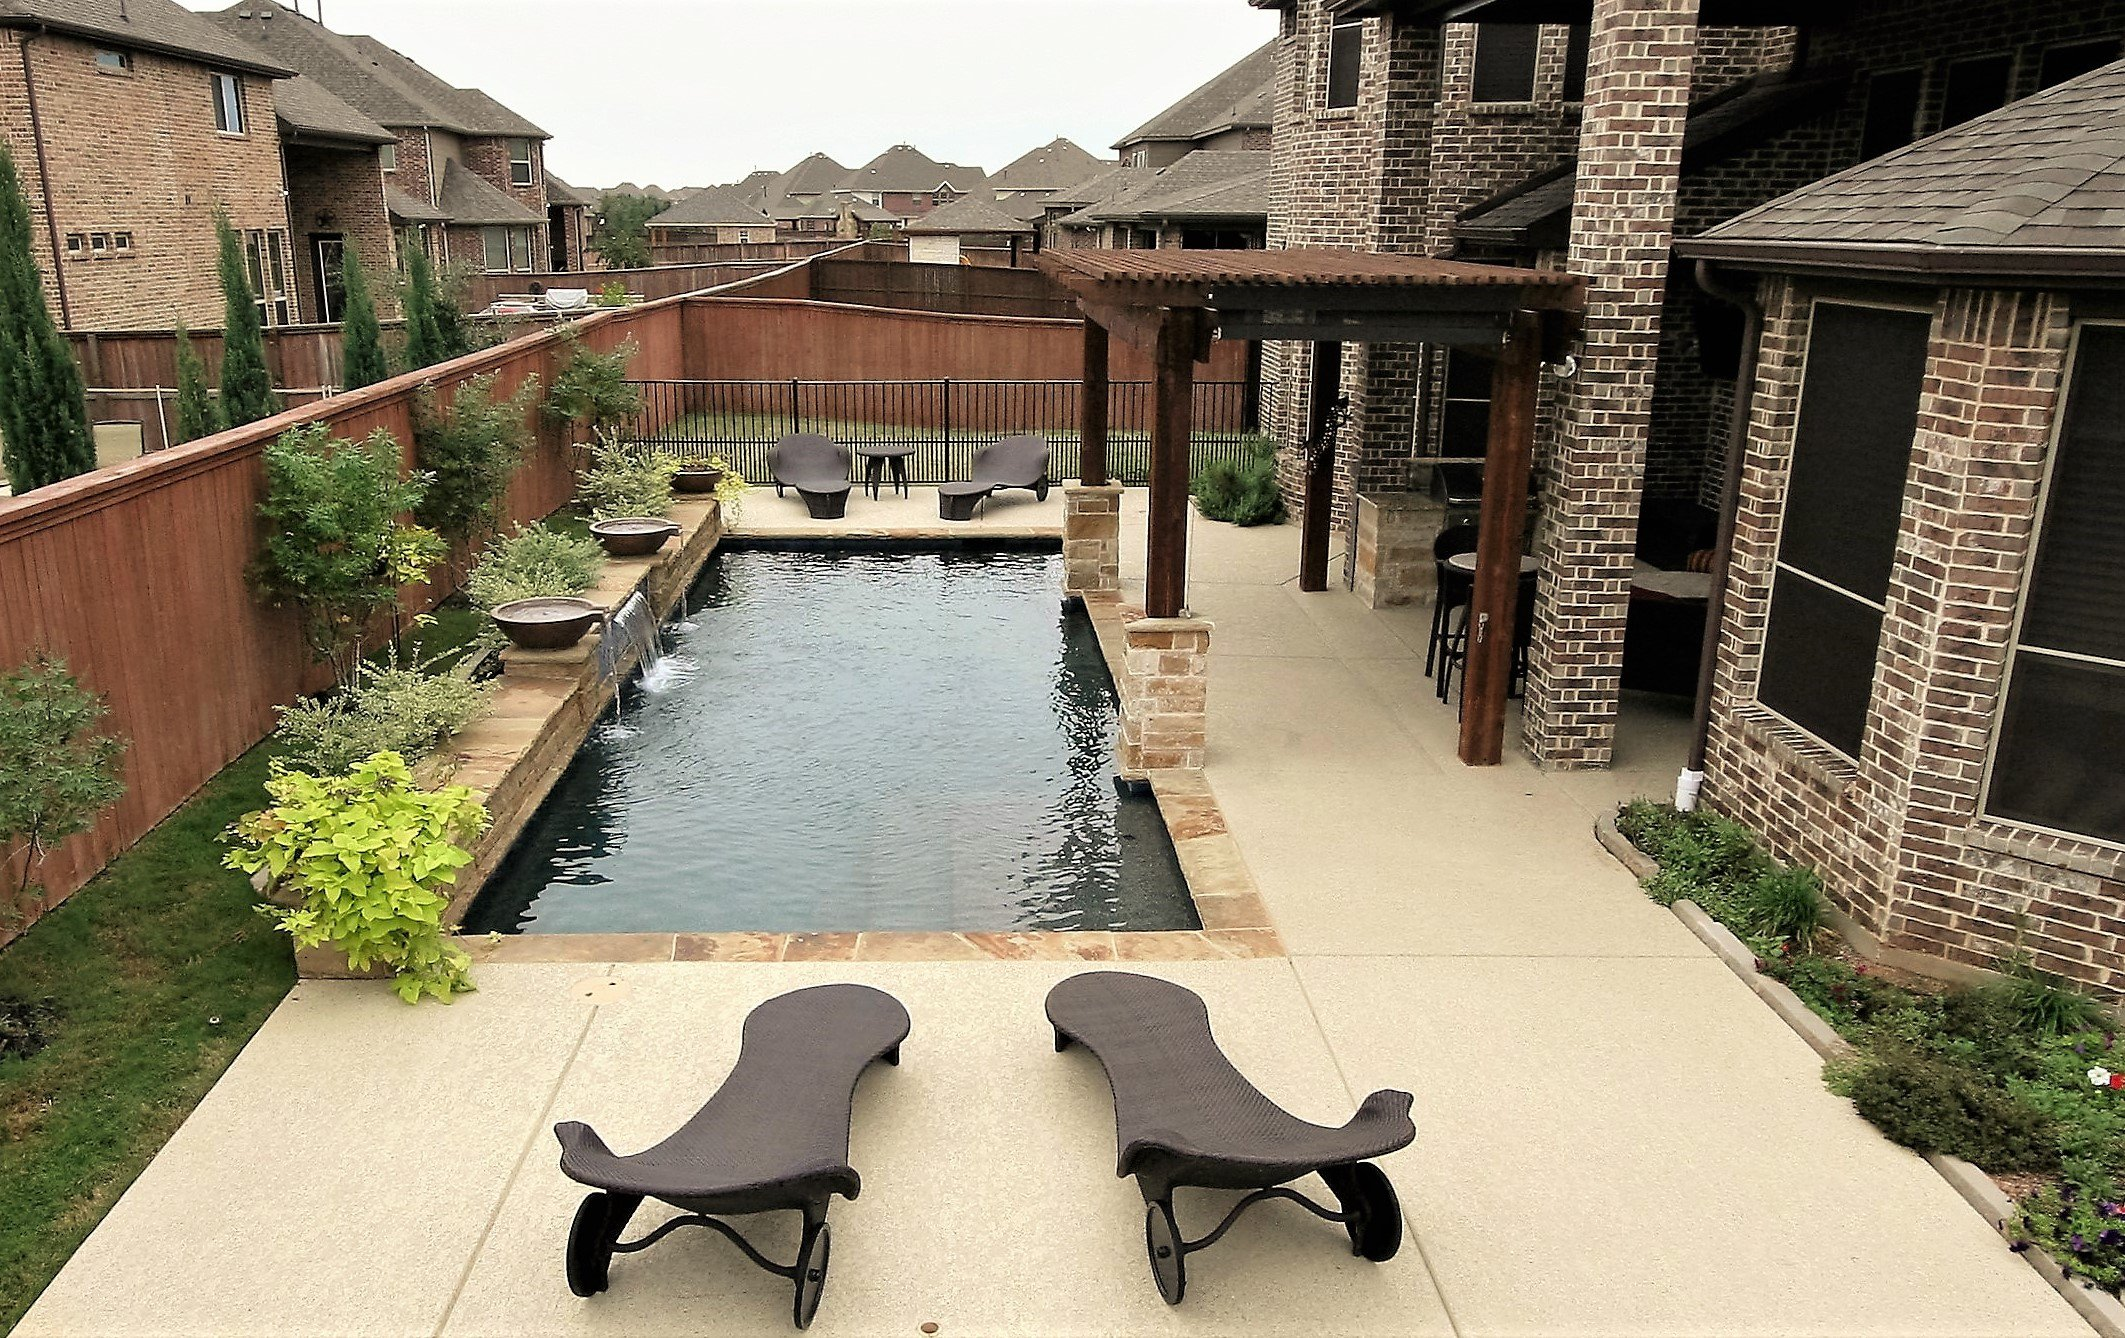 Traditional pool, Oklahoma Flagstone, Sundek, Wet Edge Midnight Sea plaster, Arbor, Outdoor kitchen, Wok water bowls, planter bowls, sheer descent, spa & Zodiac Equipment